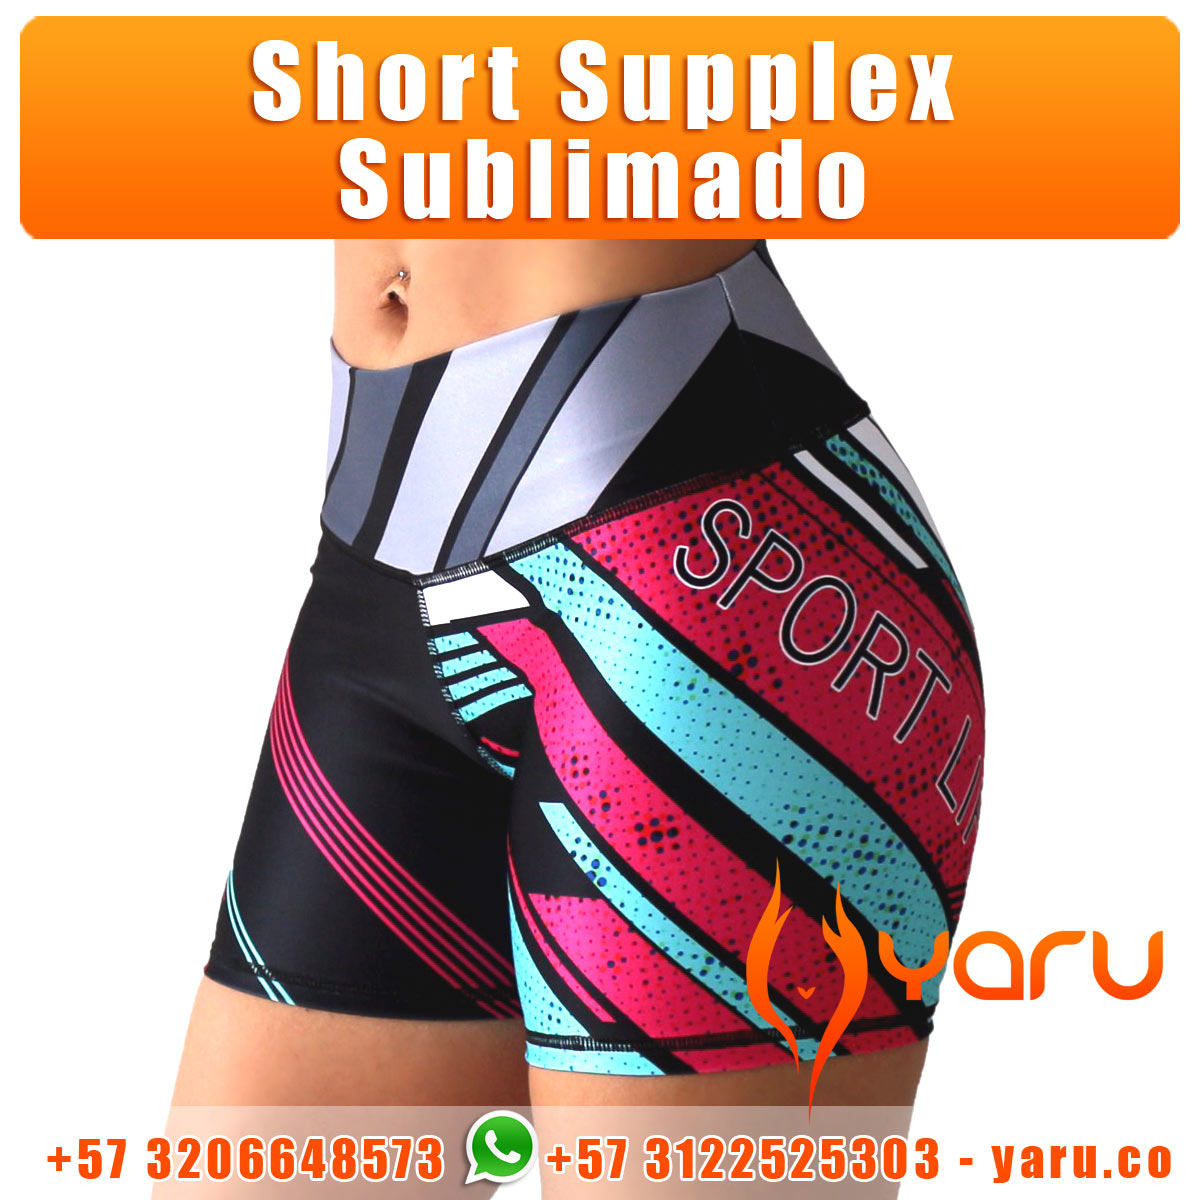 12b9d7d23a13b Short Supplex Sublimado Deportivo - YARU FABRICA FAJAS COLOMBIA